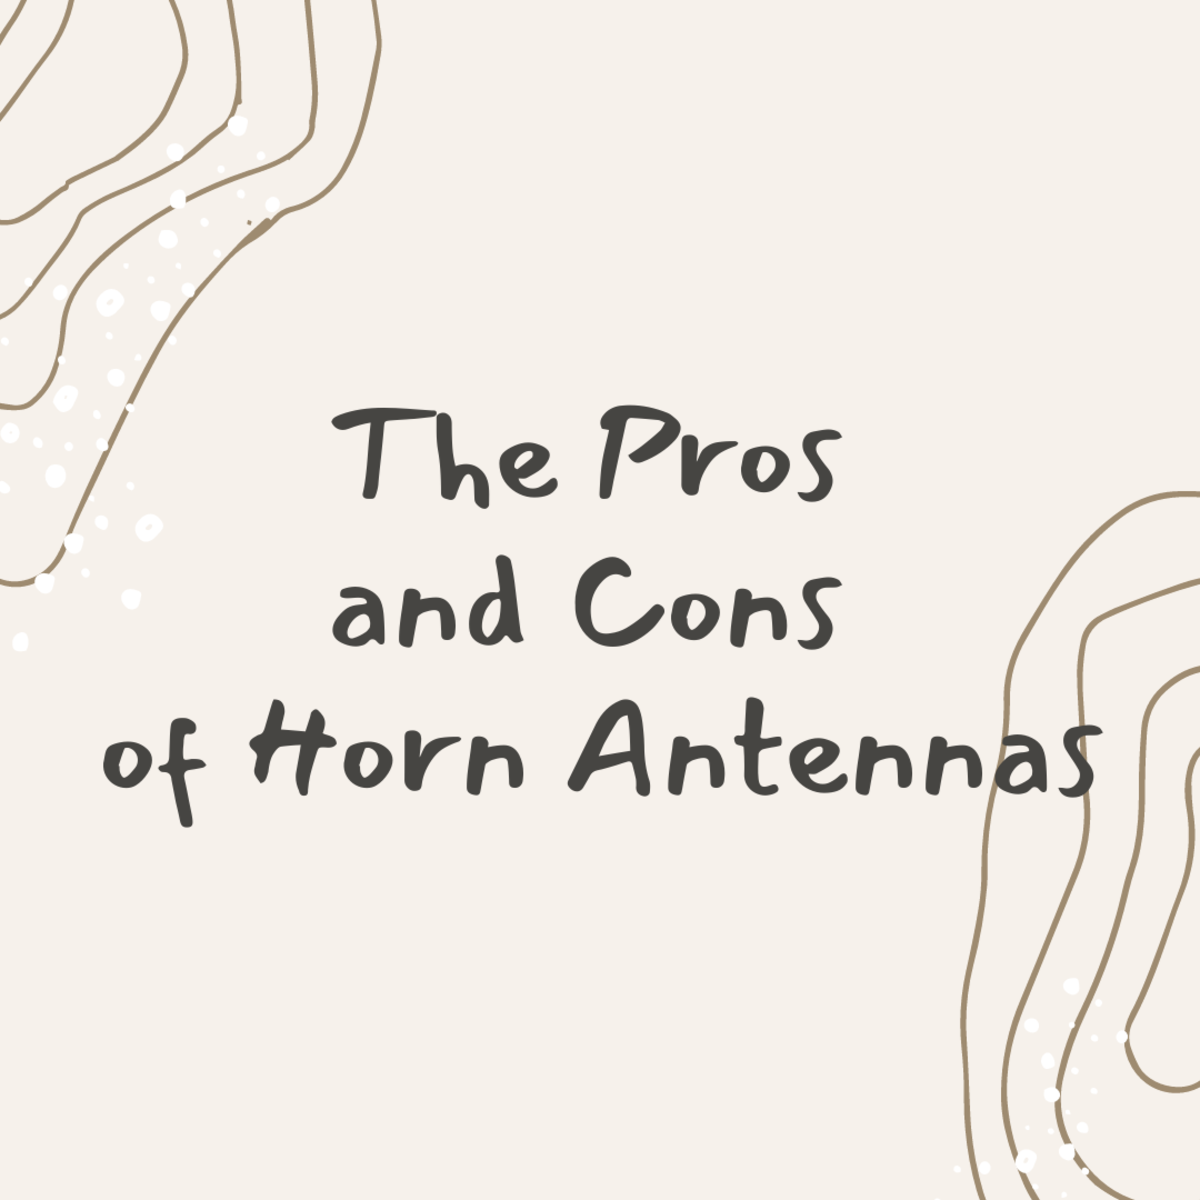 Read on for the pros and cons of this classic antenna!